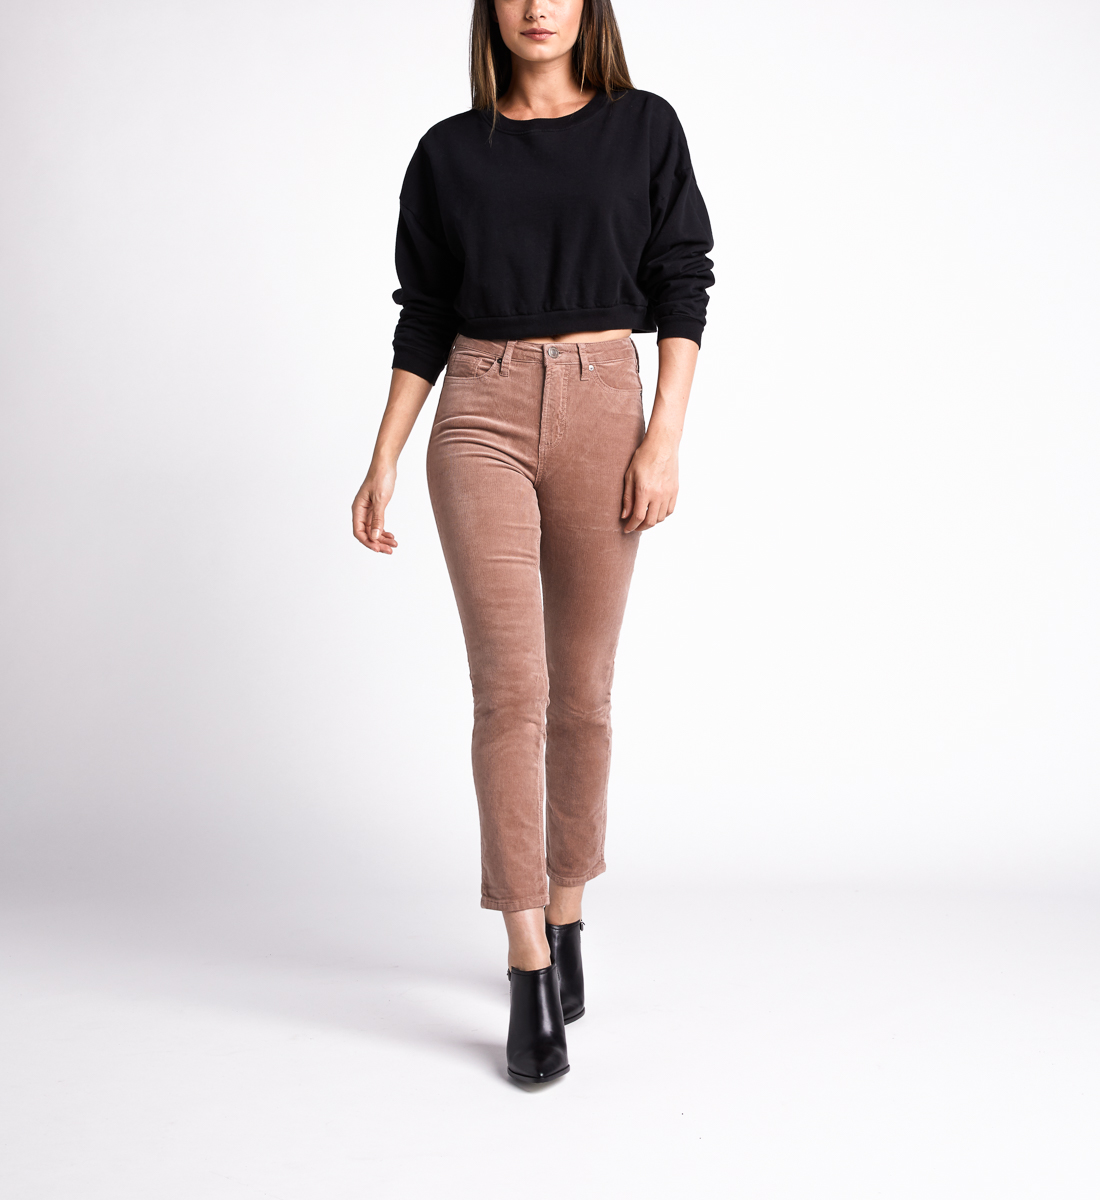 Silver Jeans High Note High Rise Slim Leg Pants